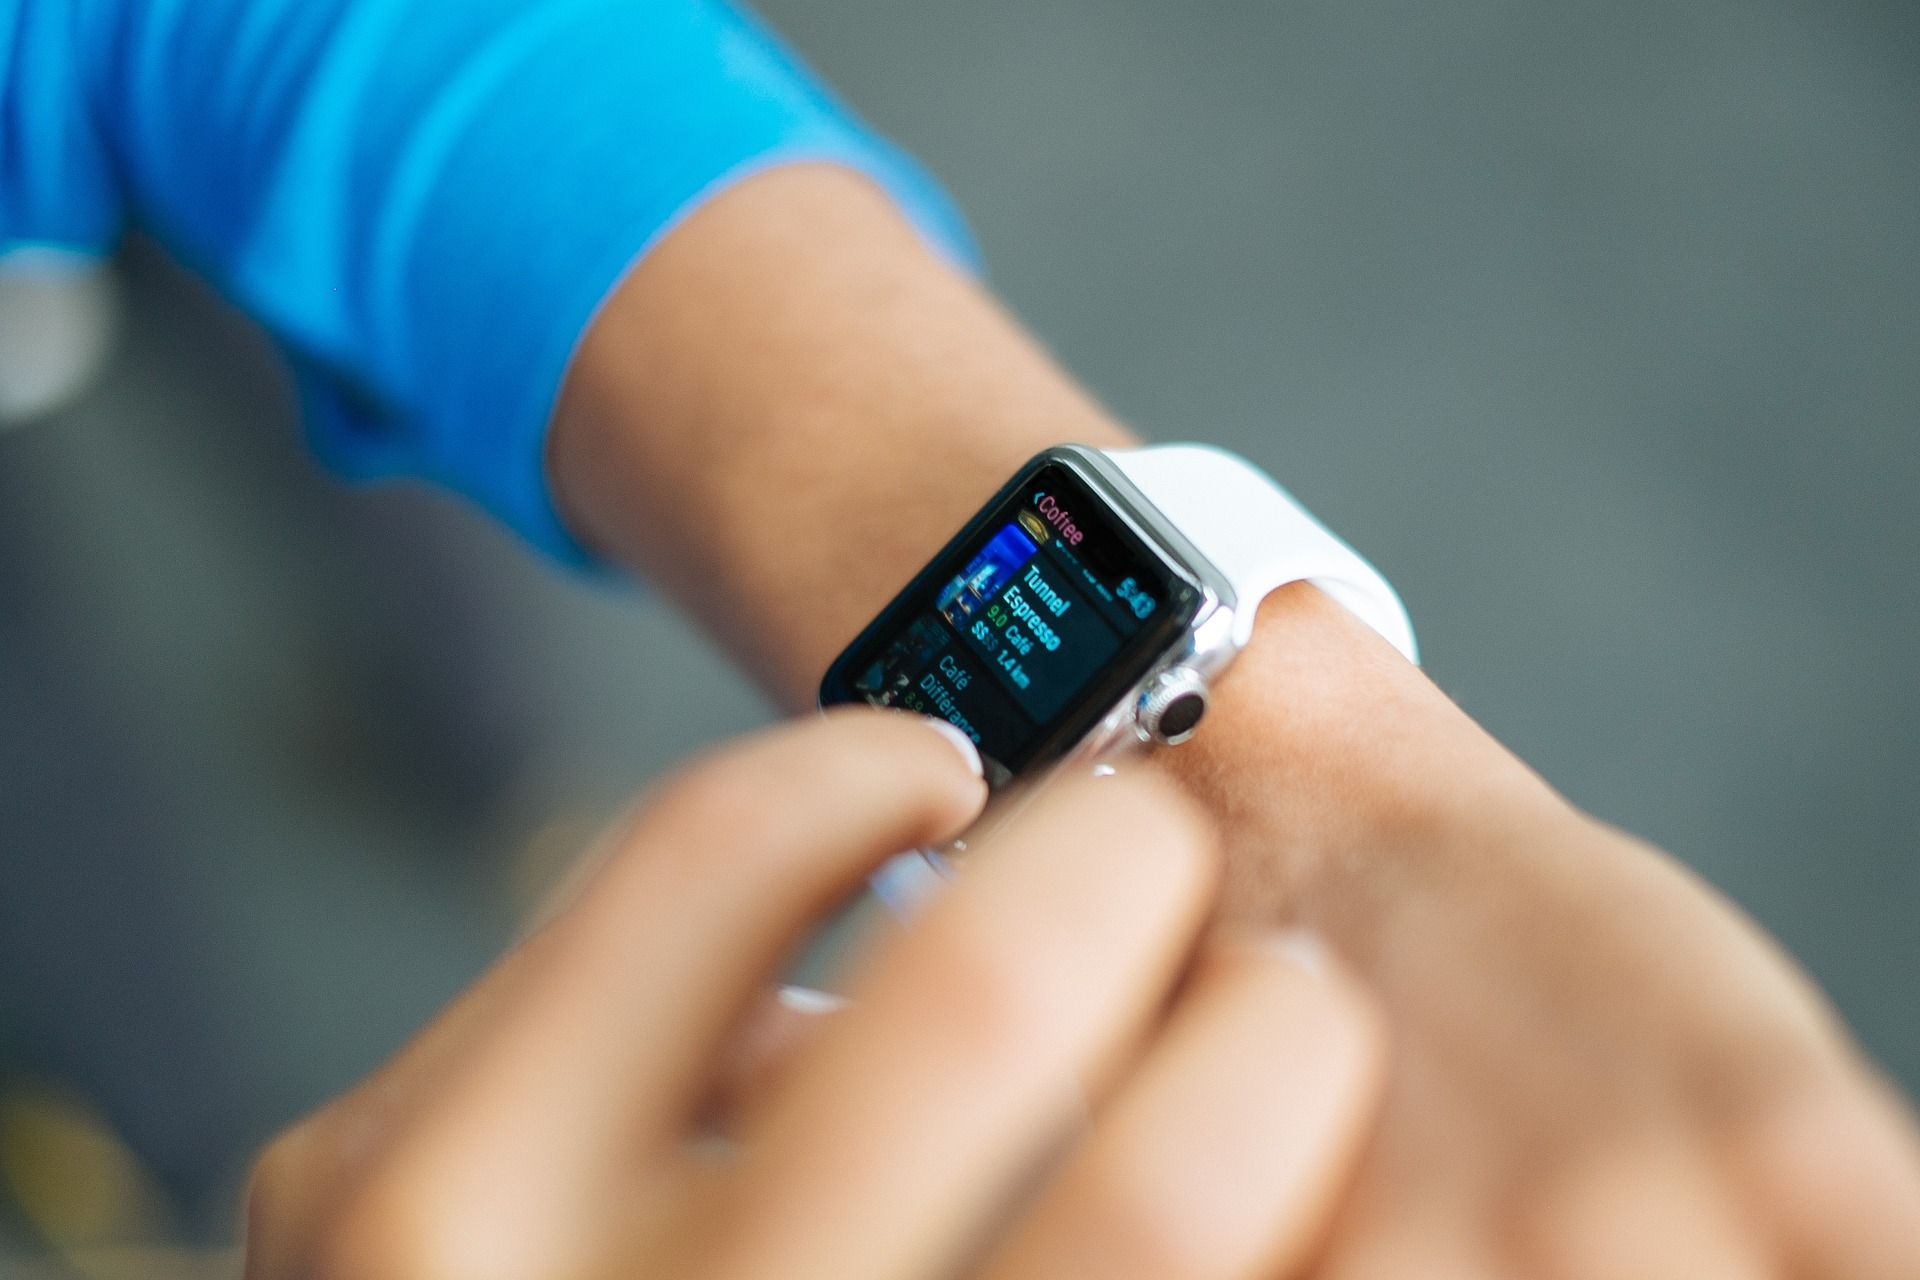 A person reviewing something on their smart watch.